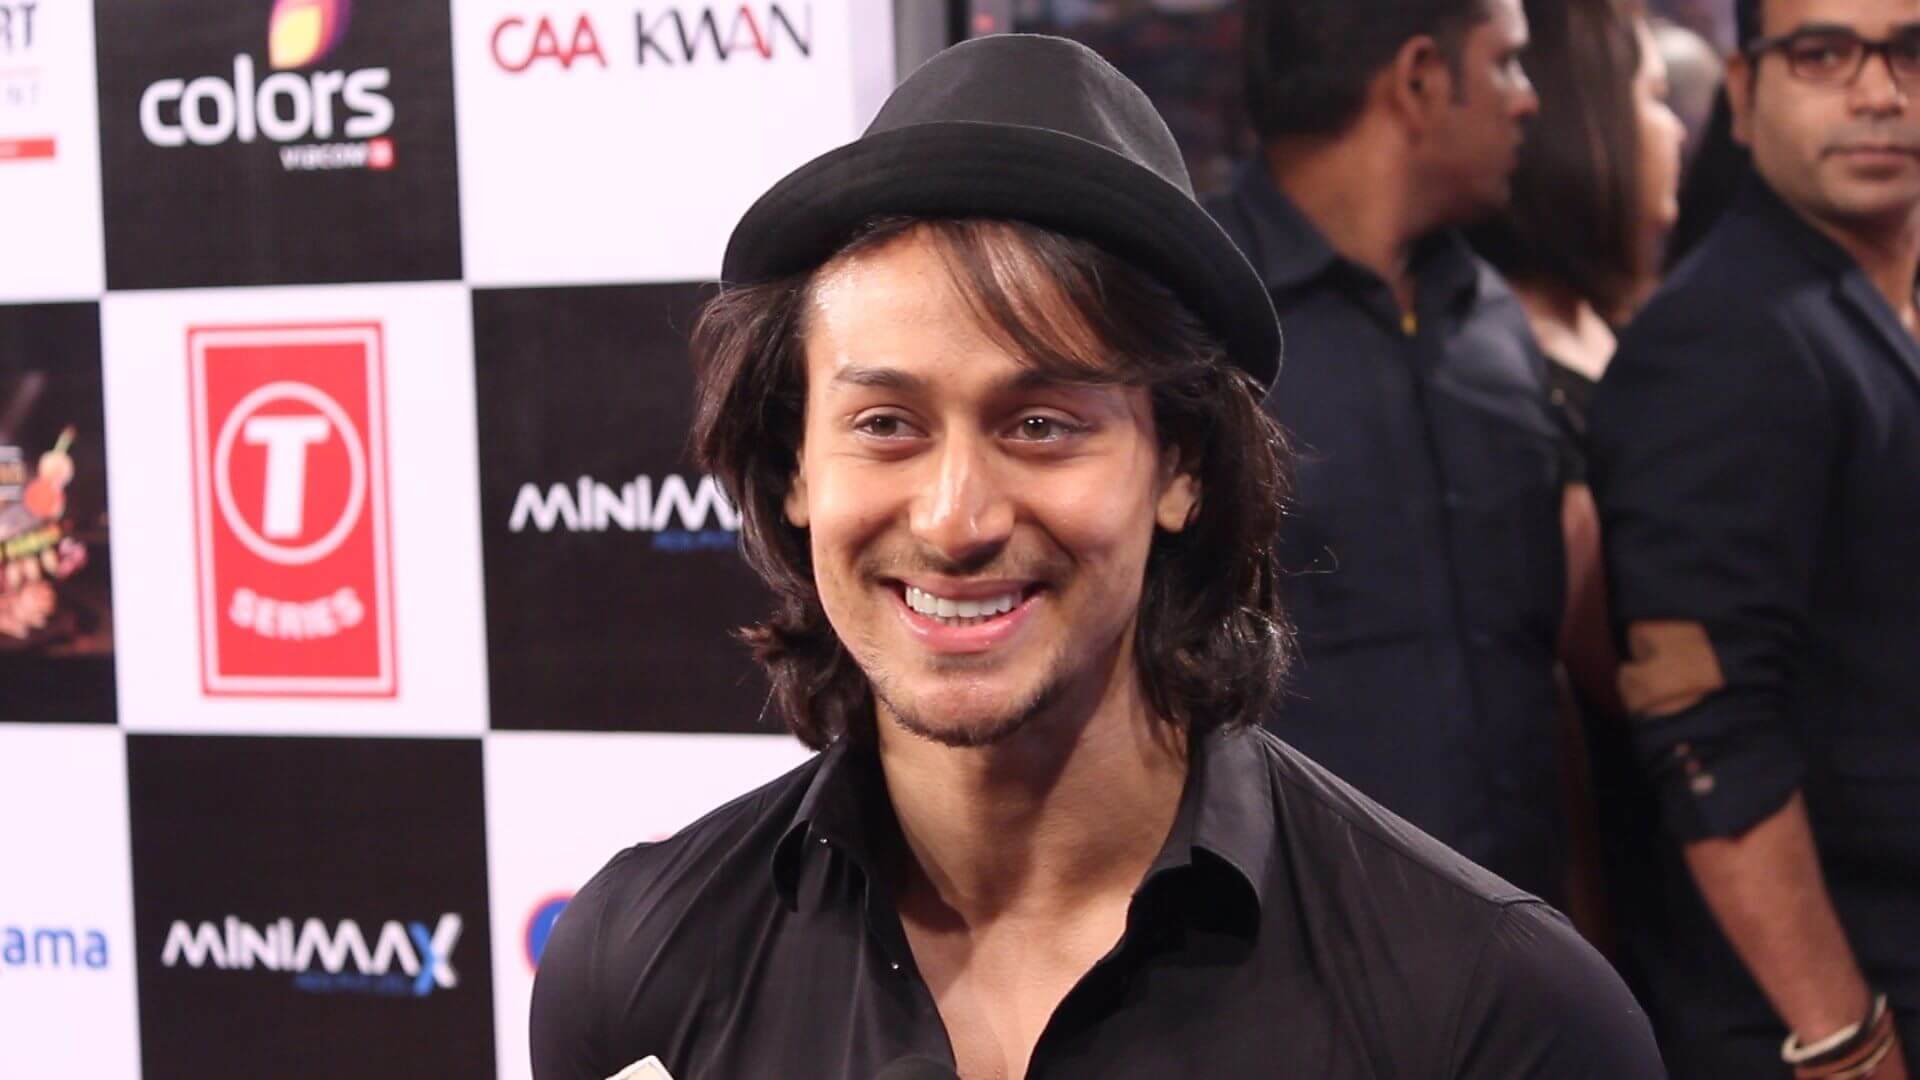 Tiger Shroff Age, Photos(image), Song, Movie, Height, Girlfriend, Sister, Date Of Birth, Net Worth, Biography, Education, Awards, Instagram, Twitter, Facebook, Wiki, Imdb, Youtube (36)